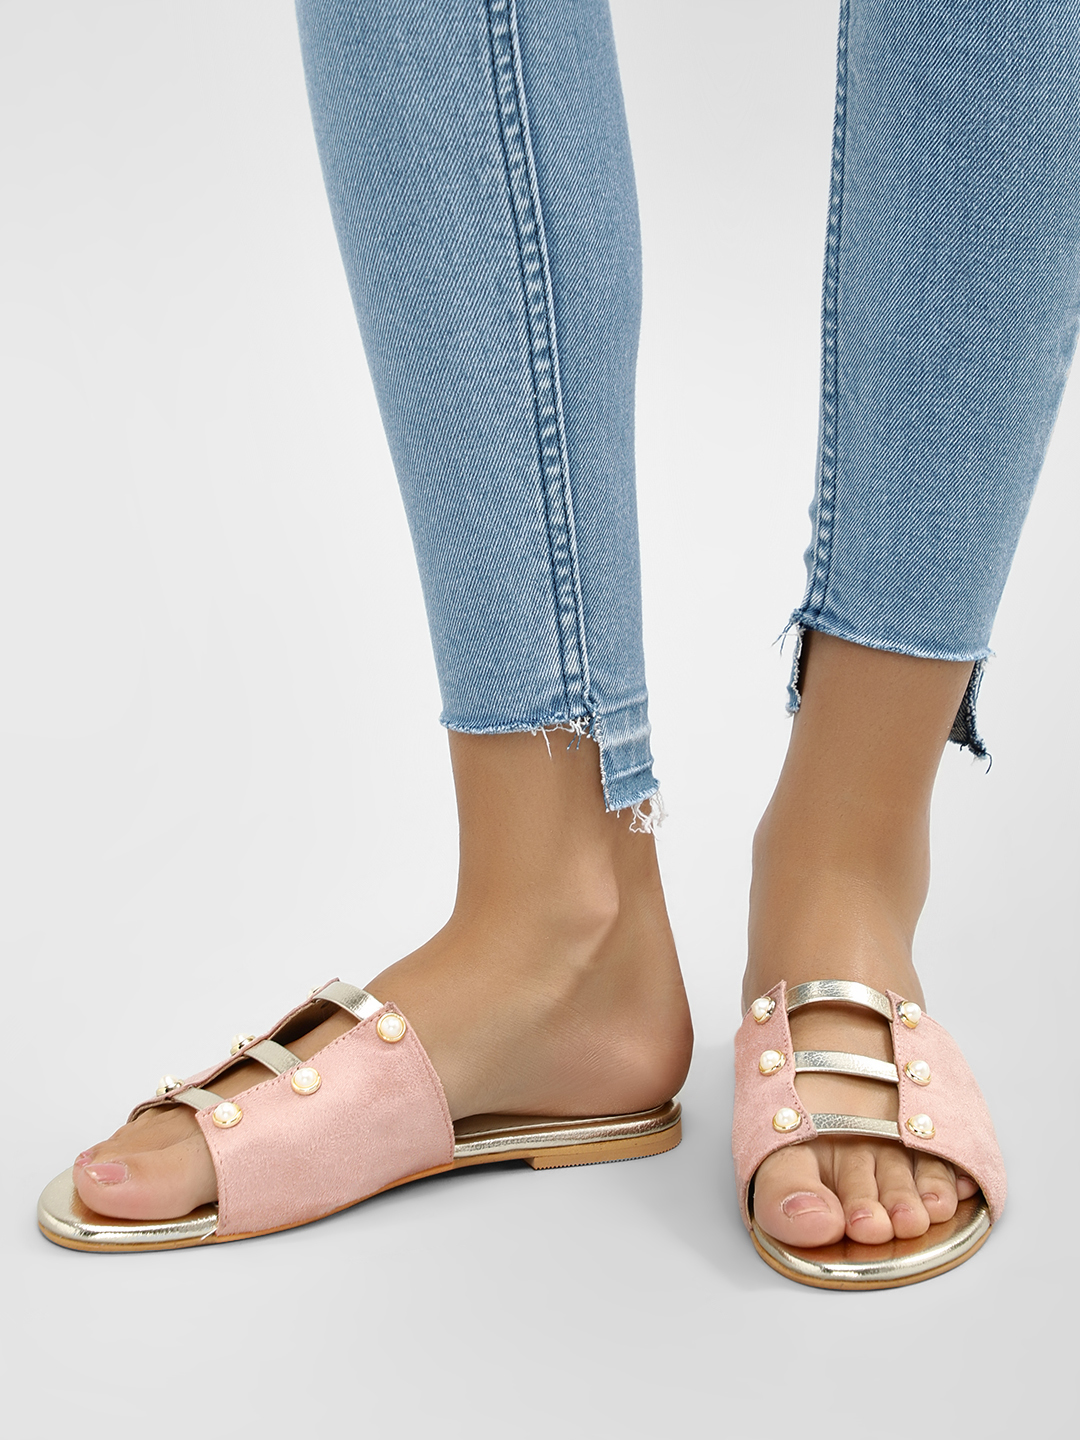 CAi Blush Pink/Gold Caged Slides With Pearl Detail 1